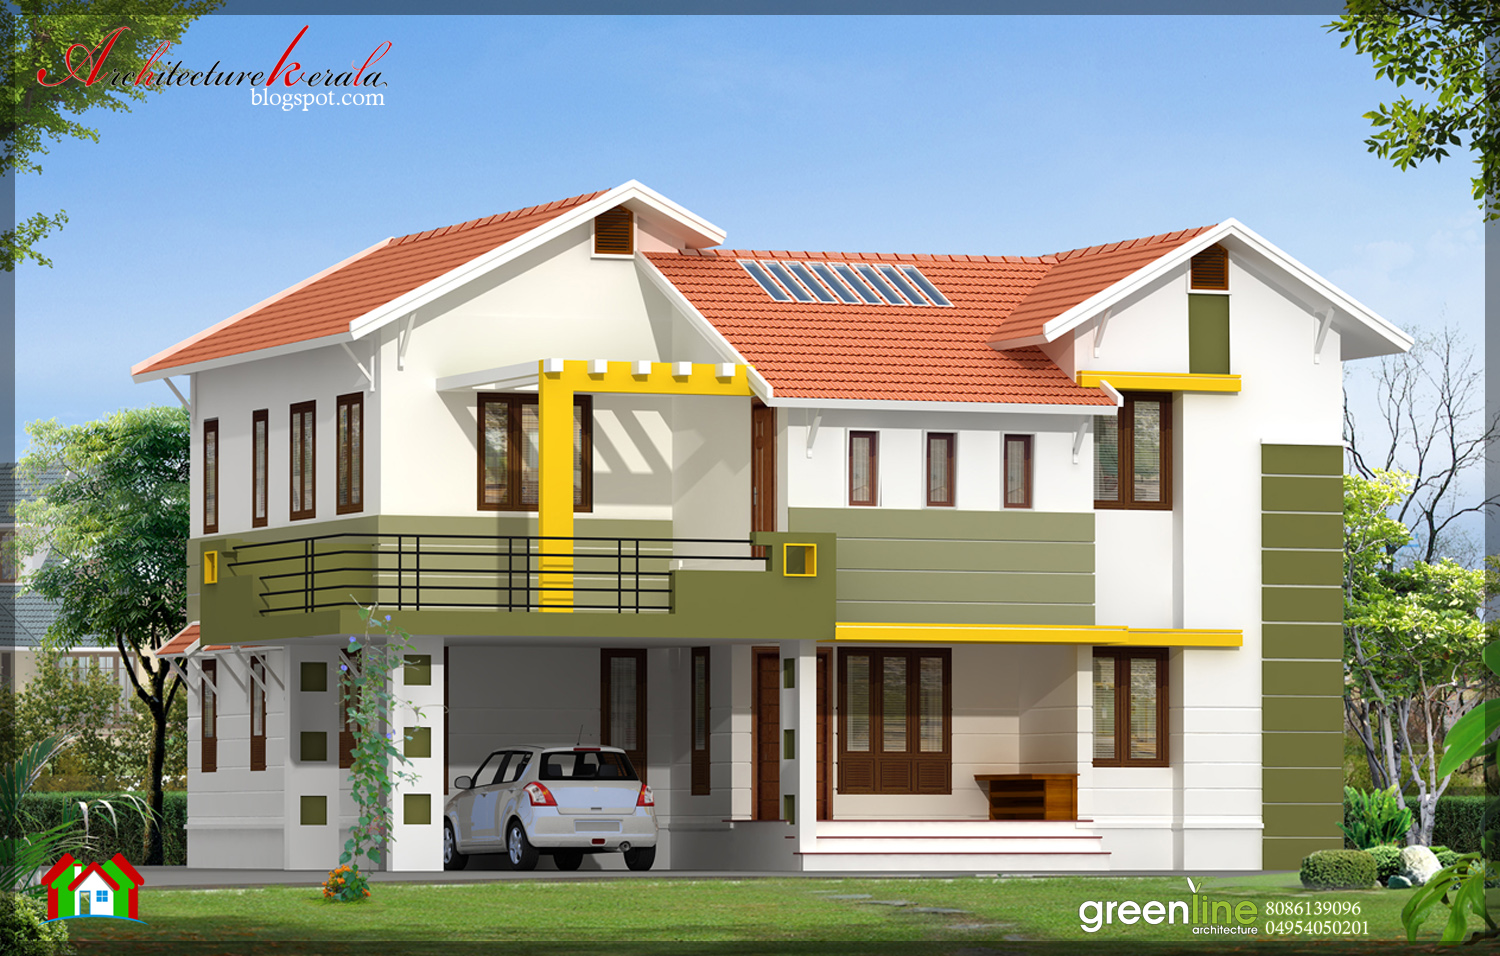 Architecture kerala 4 bhk contemporary style indian home for Home designs kerala architects